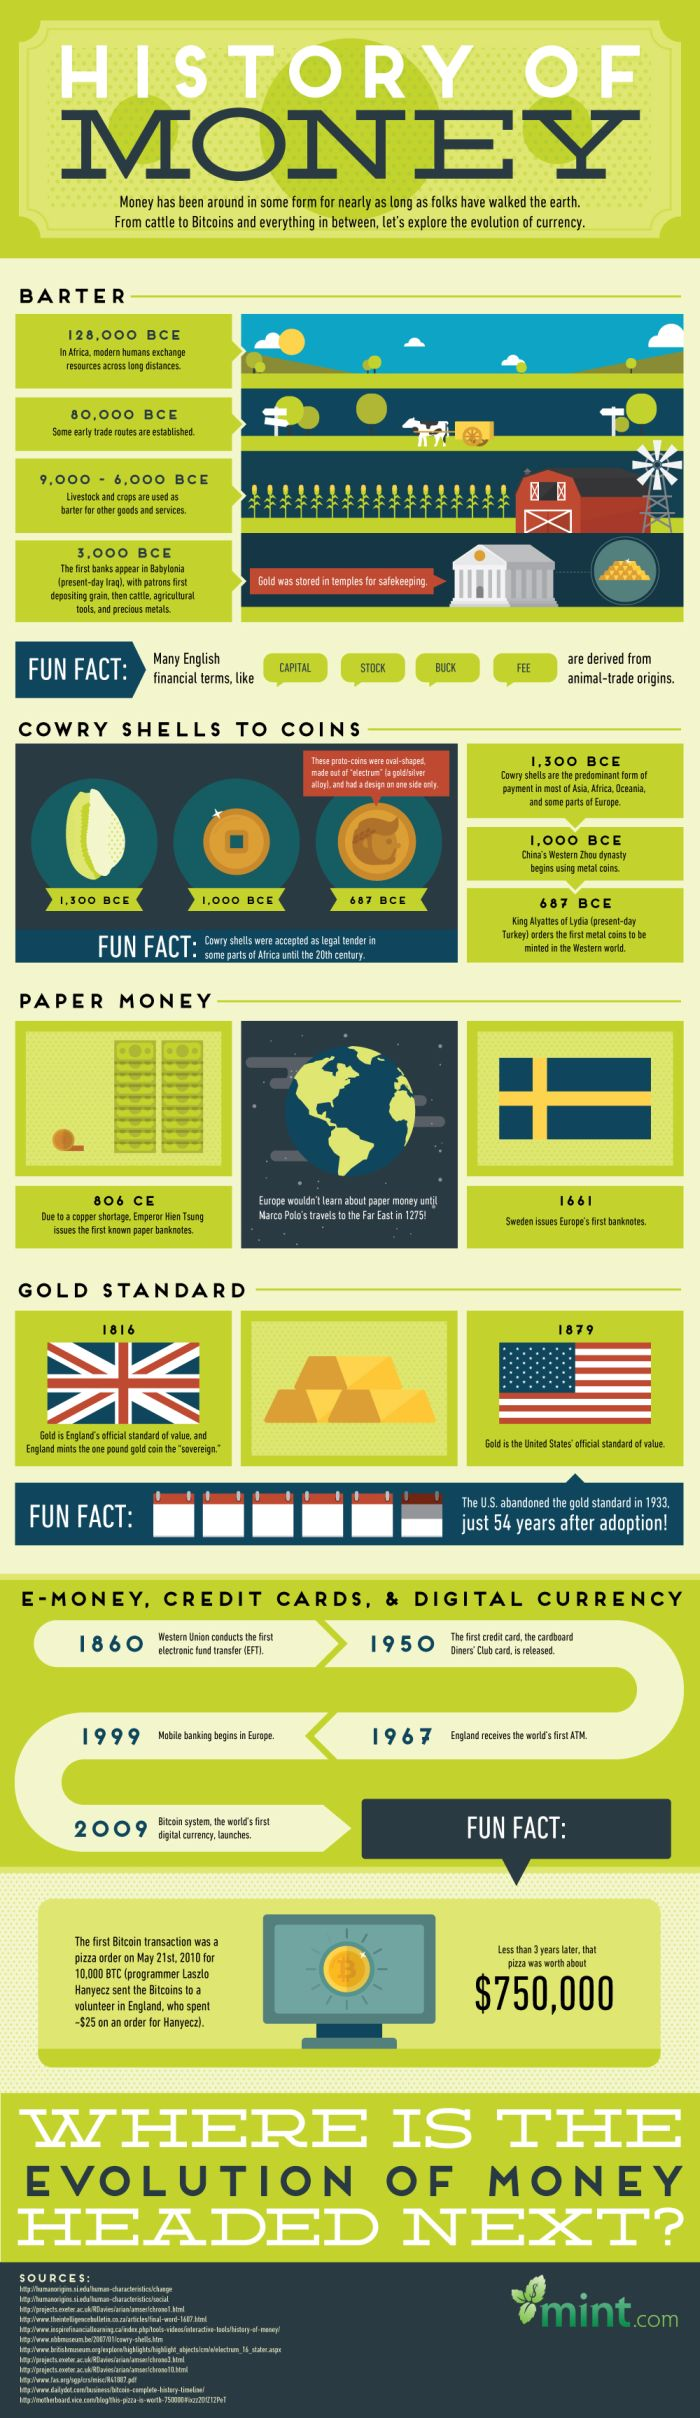 Educate Yourself On The Evolution Of Money (infographic)